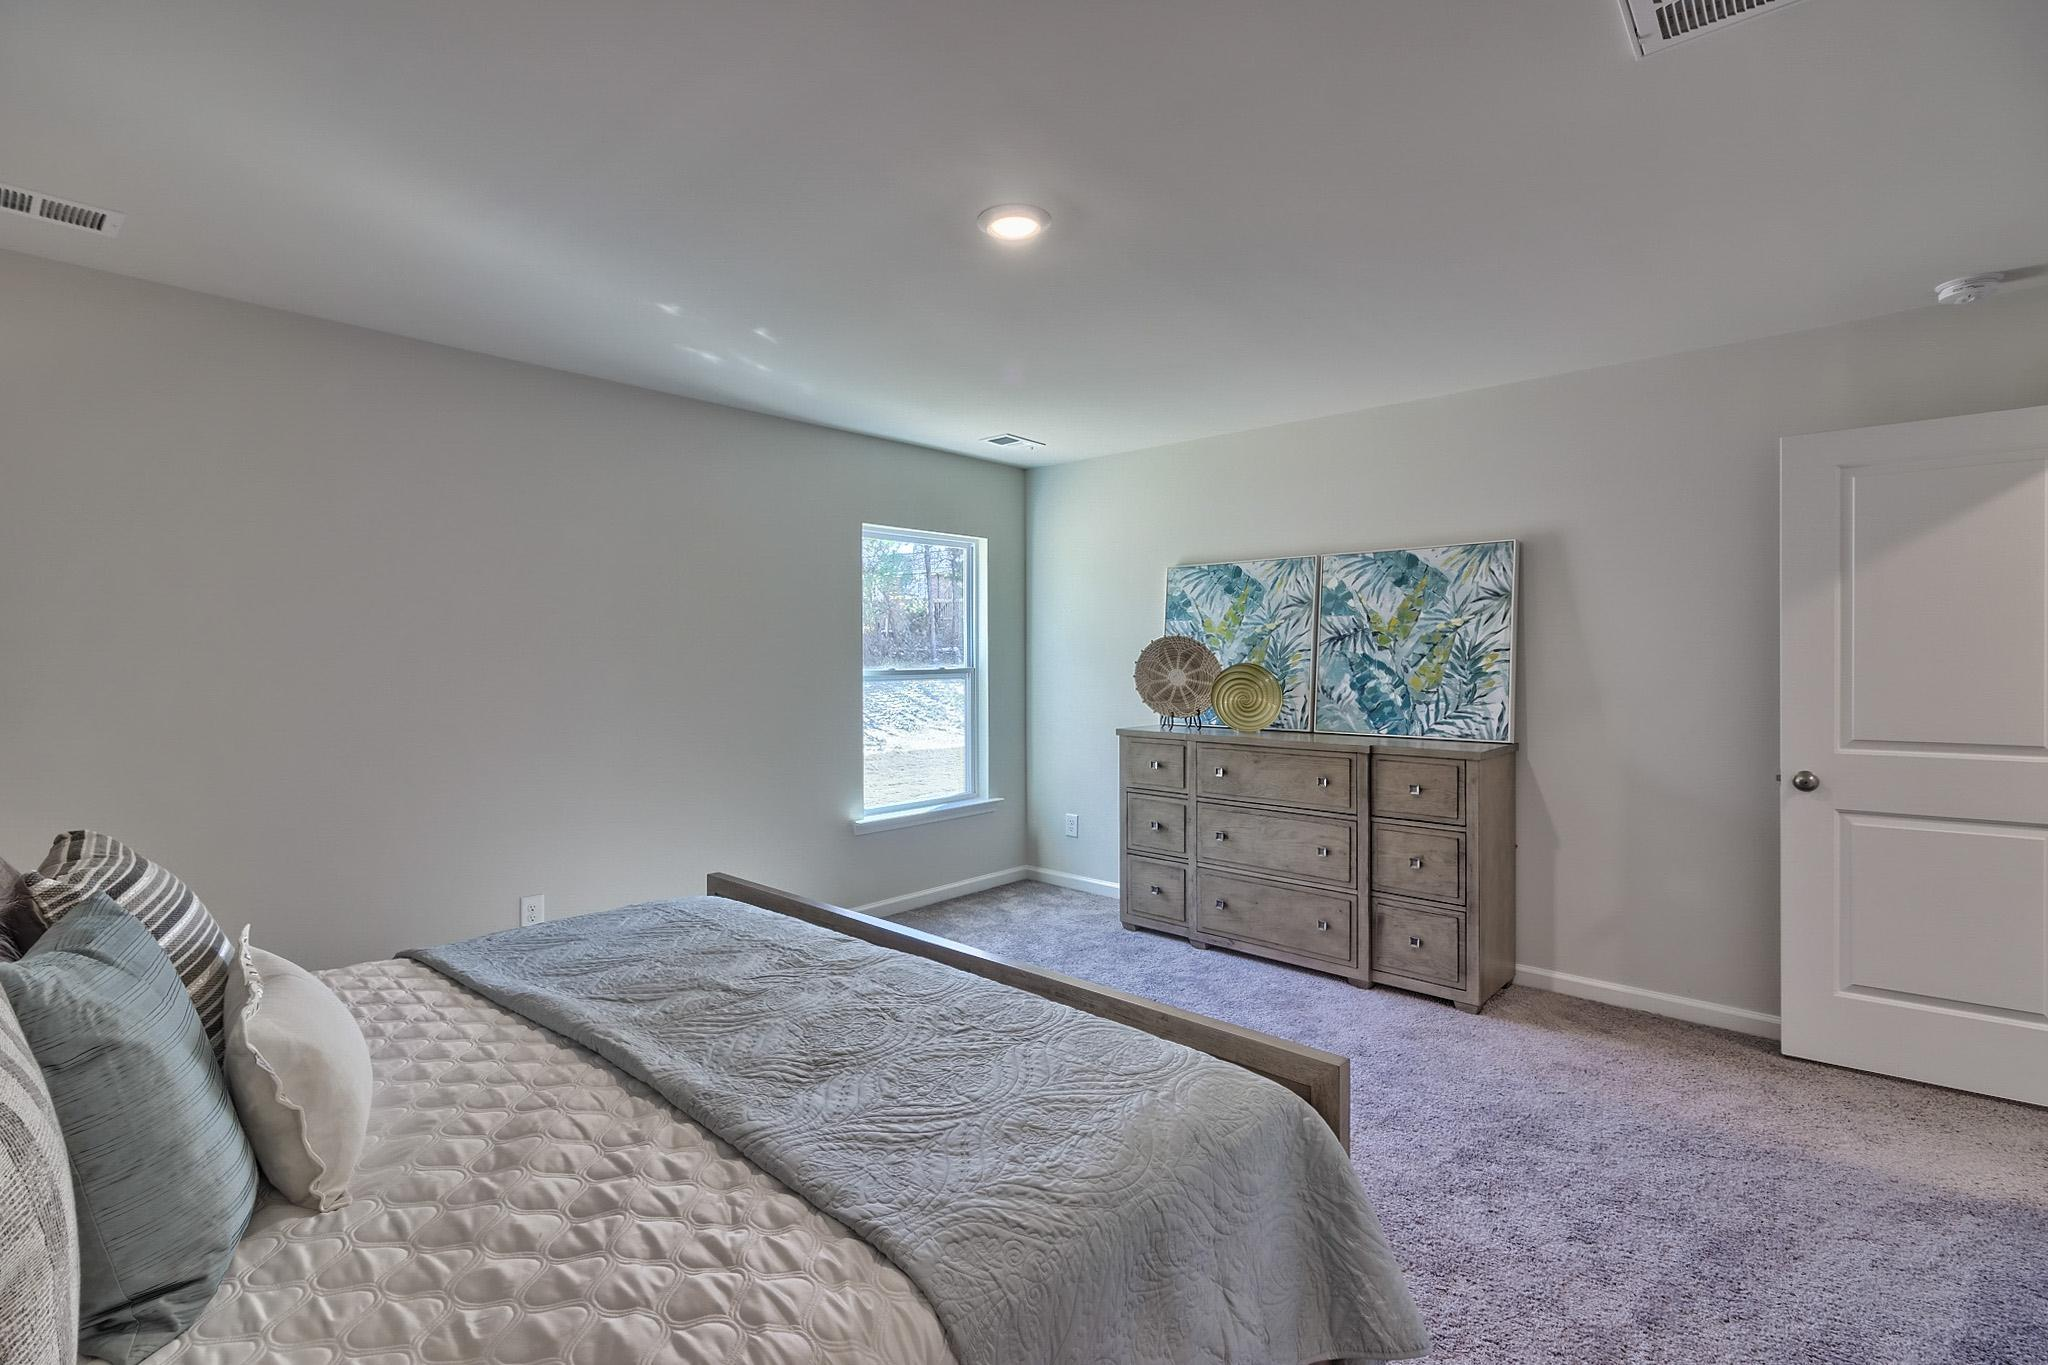 Bedroom featured in the Alder By McGuinn Hybrid Homes in Columbia, SC